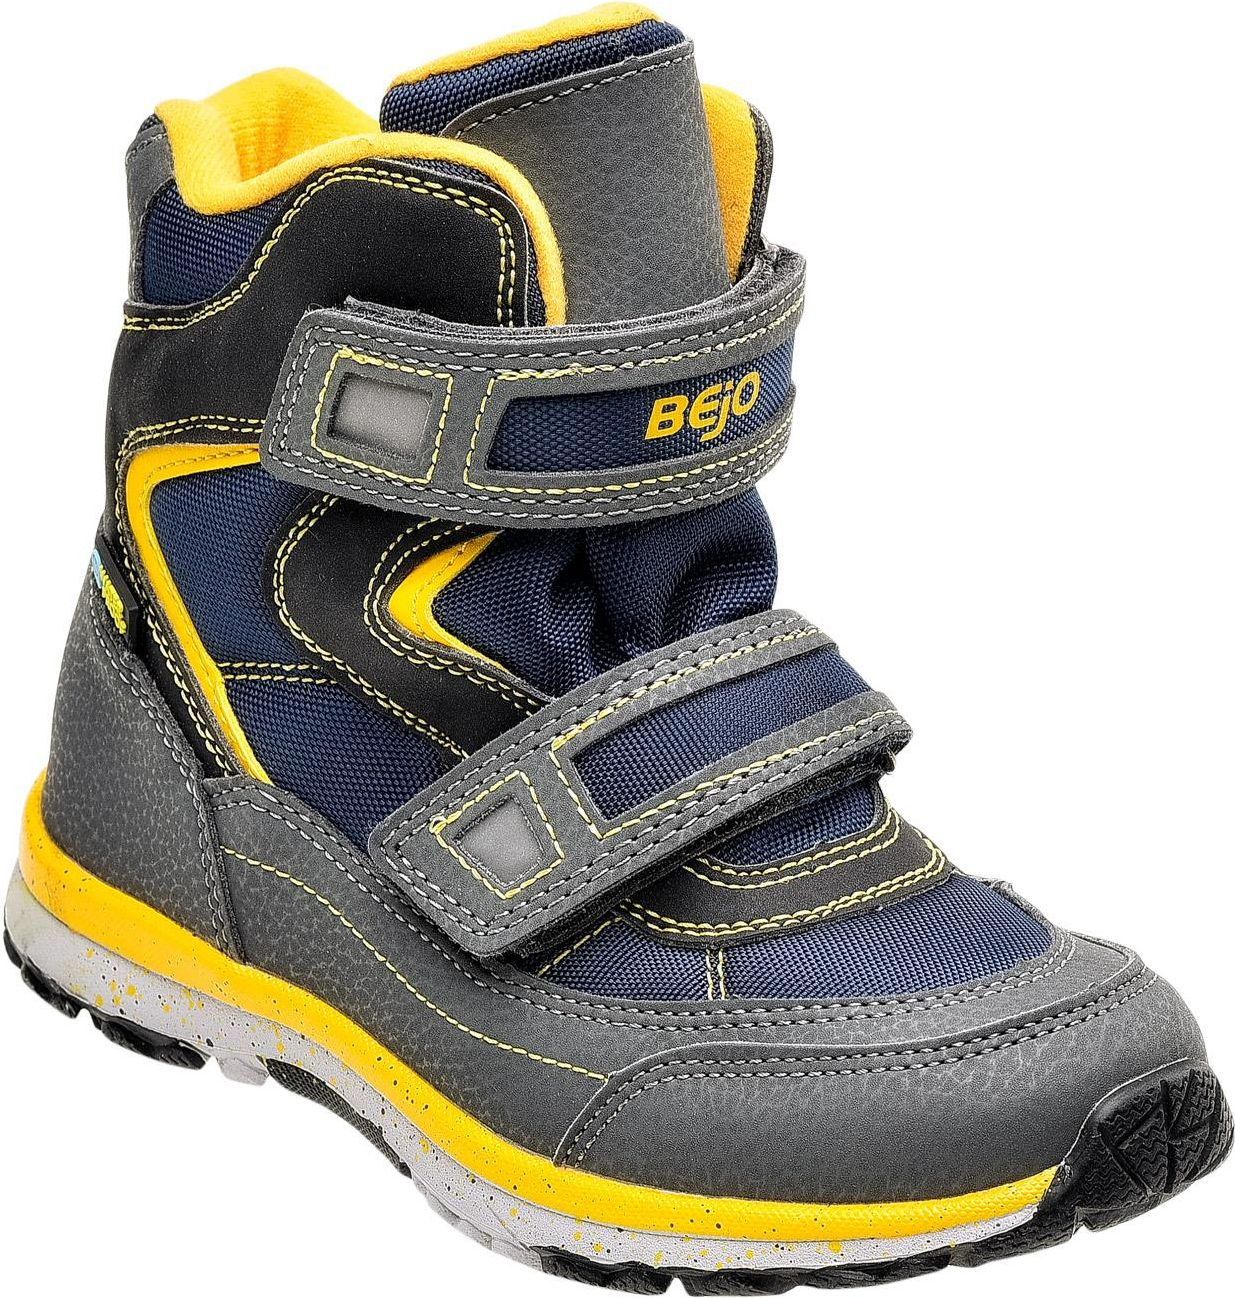 BEJO Buty dzieciece Piner Jr Navy/dark Grey/corn r. 34 5264540